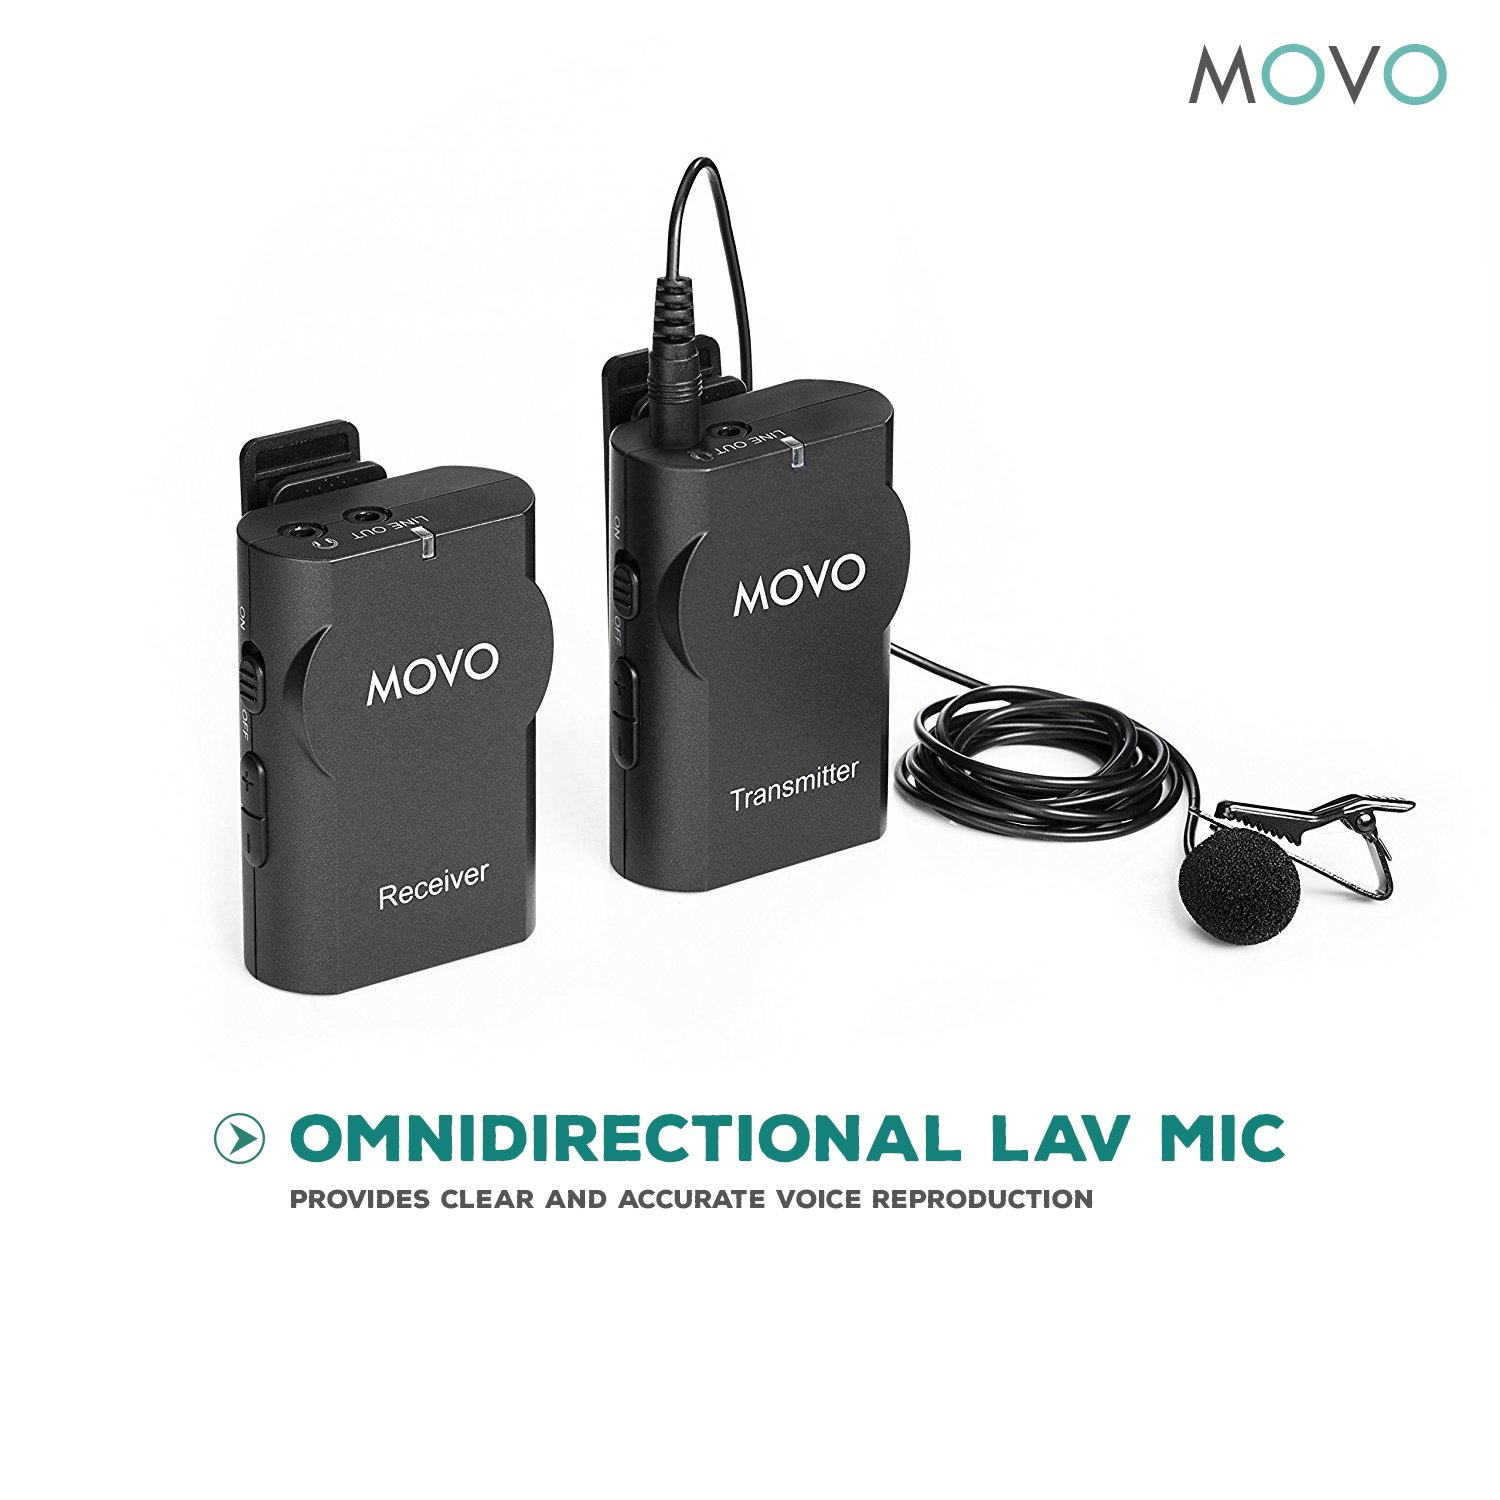 Movo WMIC10 2.4GHz Wireless Lavalier Microphone System for DSLR Cameras, iPhone/iPad/Android Smartphones, Camcorders (50-foot Transmission Range) by Movo (Image #5)